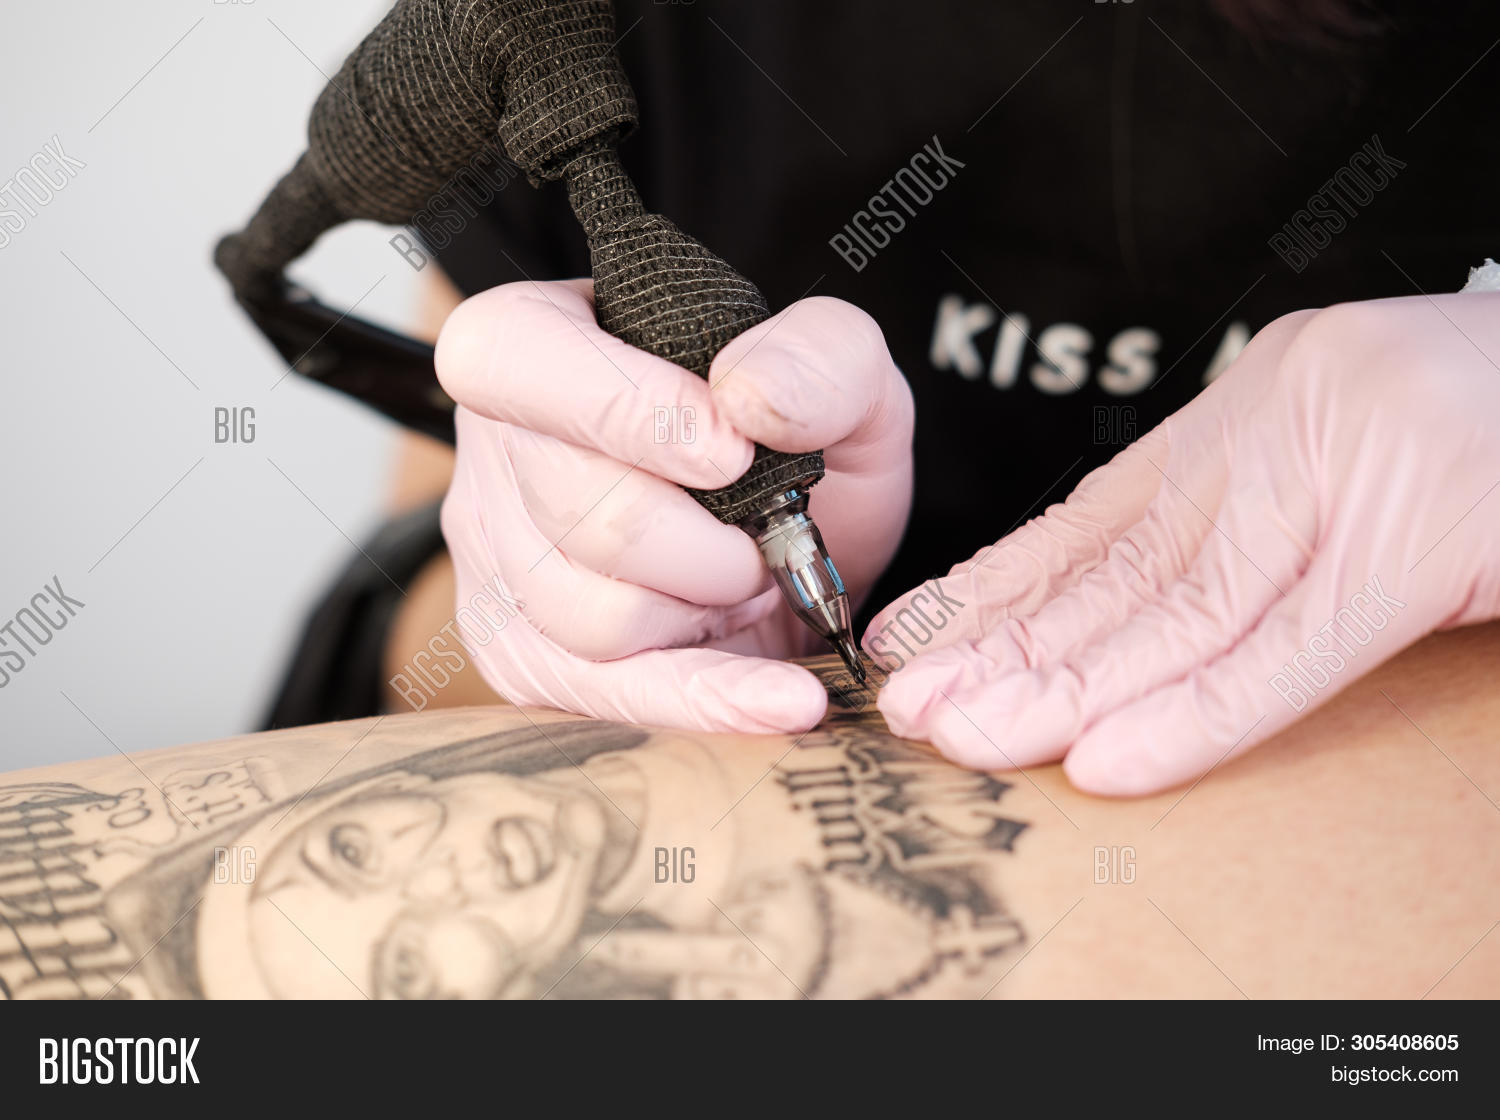 adult,alternative,art,artist,artwork,attractive,background,black,body,caucasian,closeup,creative,design,drawing,dreadlocks,equipment,fashion,female,girl,gloves,hand,handsome,haunch,hip,individual,individuality,ink,machine,makes,man,master,nun,pain,paint,pattern,people,pigment,professional,salon,skin,studio,style,tattoo,tattooer,tattooing,tattooist,technician,tool,woman,young